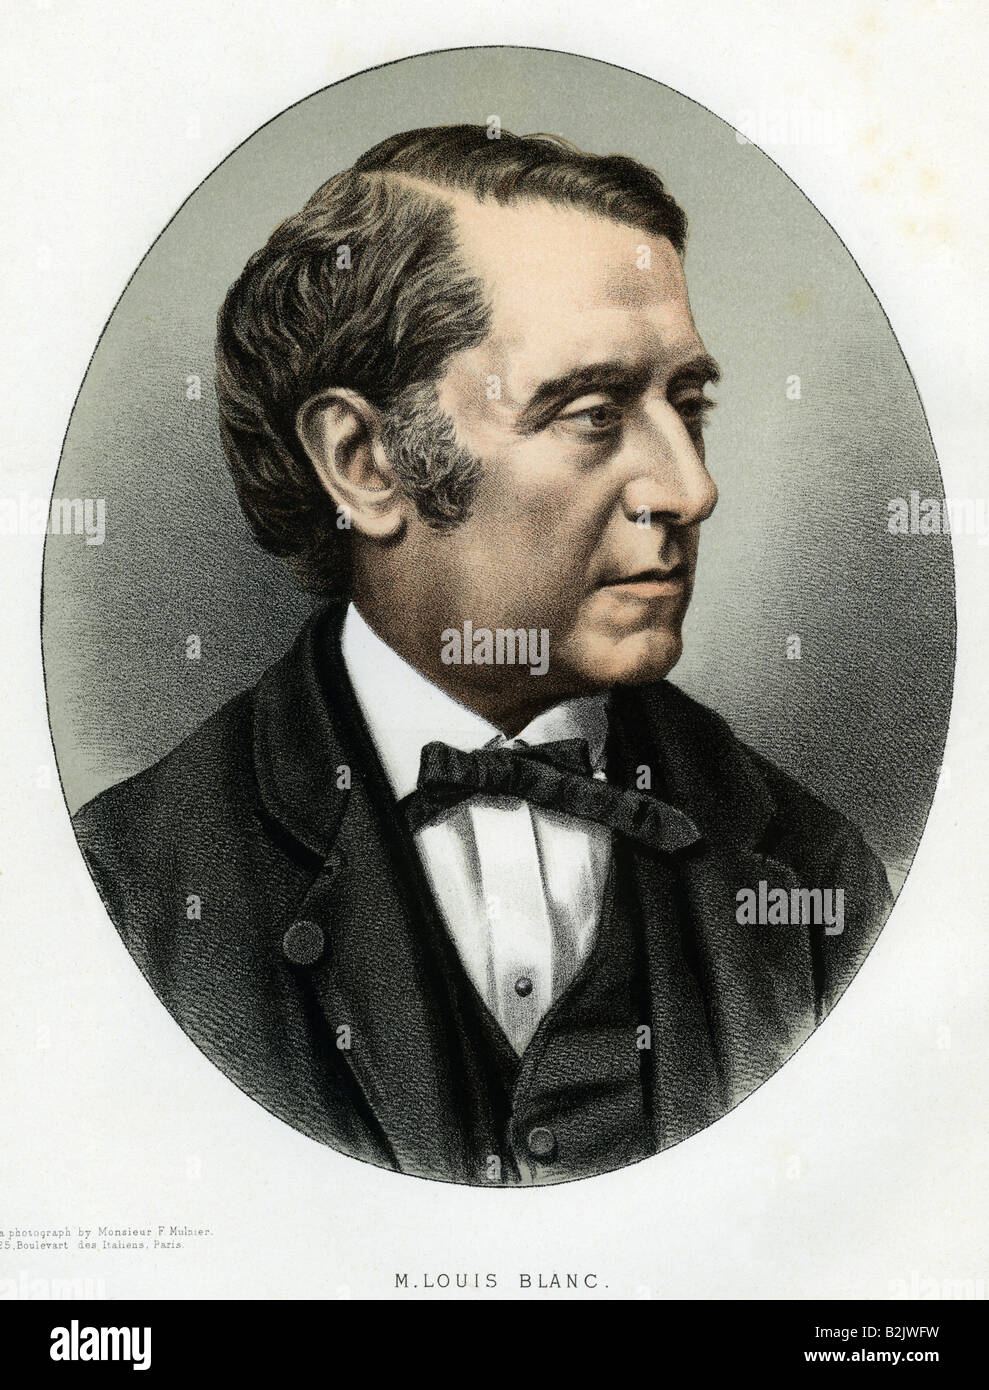 Blanc, Louis, 29.10 1811 -  6.12.1882, French historian, politician, portrait, lithograph, coloured, based on a - Stock Image